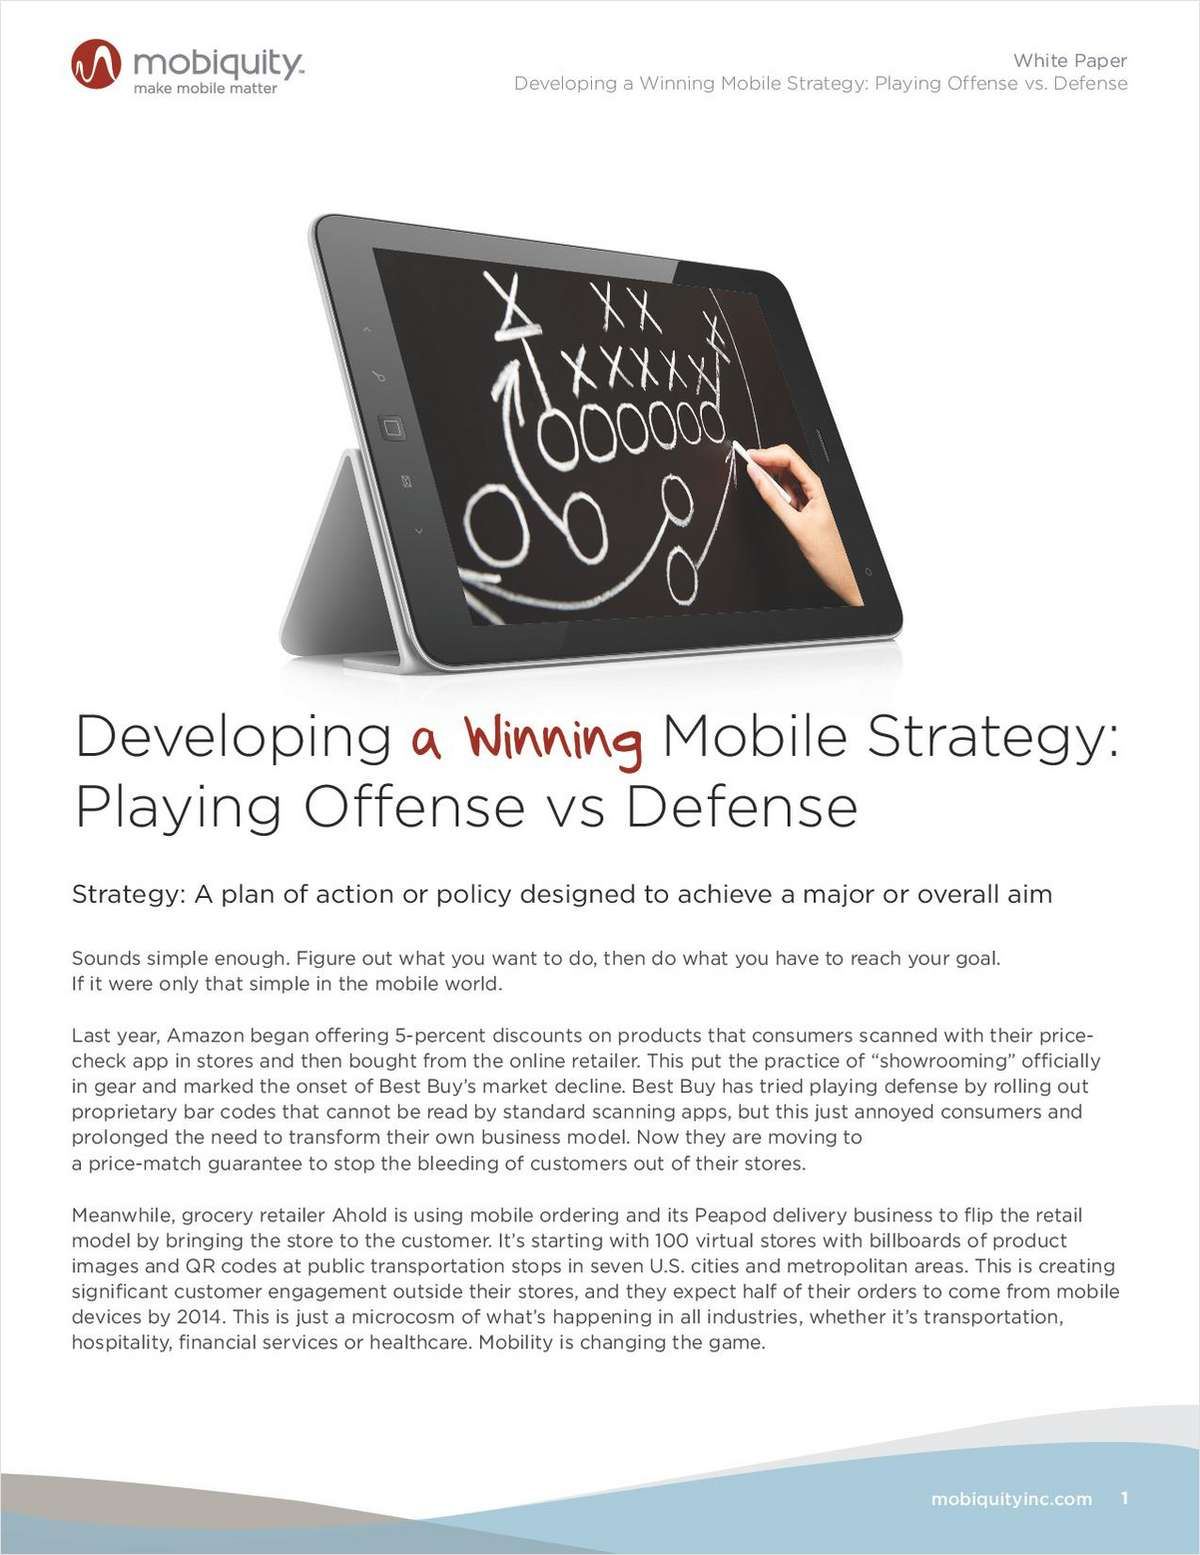 Developing a Winning Mobile Strategy: Playing Offense vs. Defense